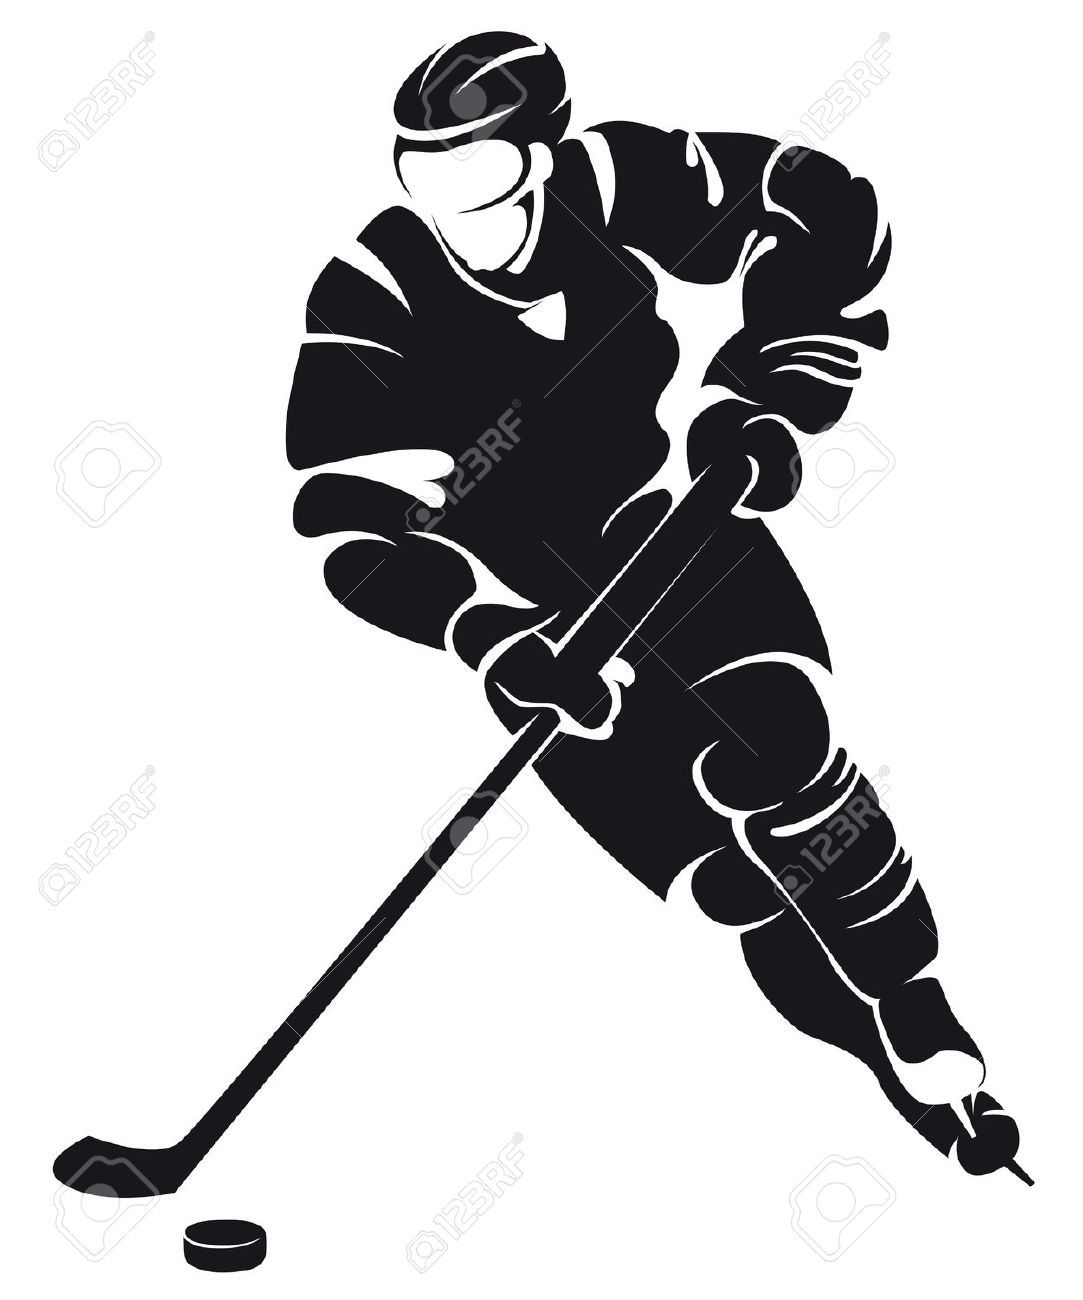 Ice Hockey Clipart Black And White Origami Sword Diagrams Get Domain Pictures Getdomainvidscom Download